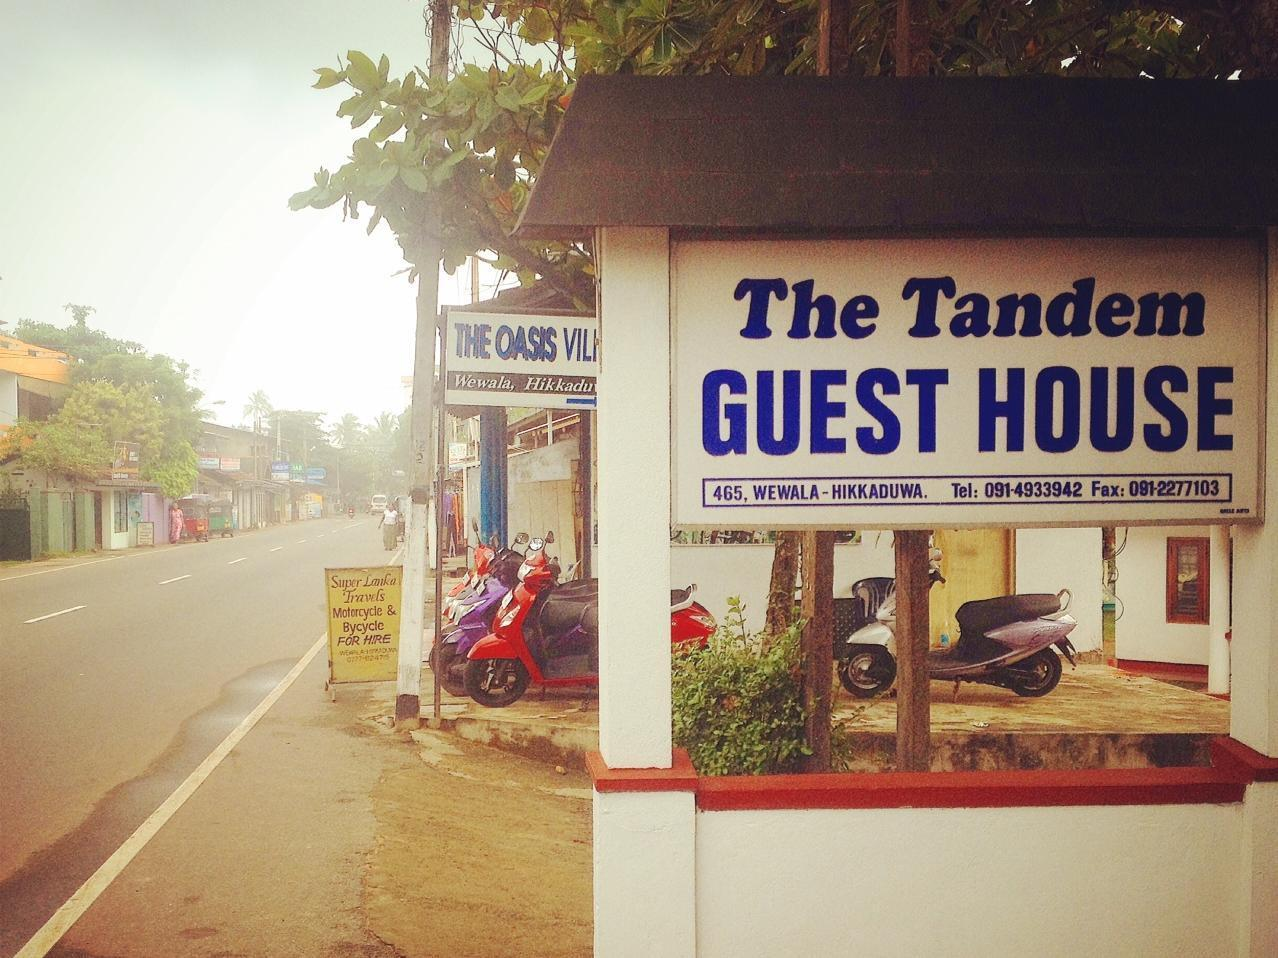 The Tandem Guesthouse